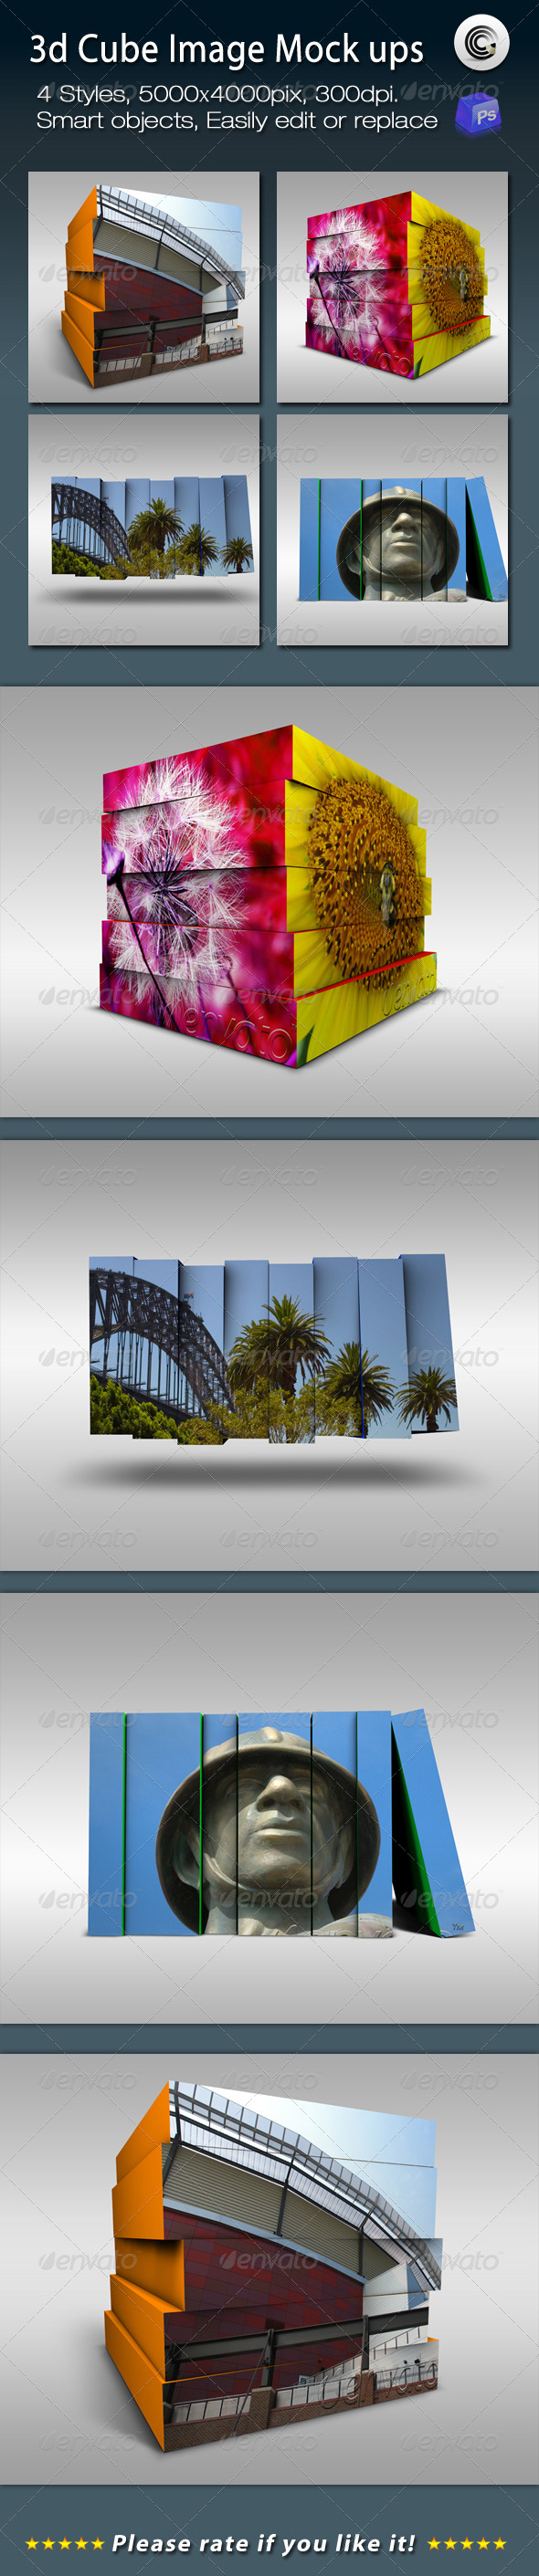 3D Cube Image Mock ups - Tech / Futuristic Photo Templates